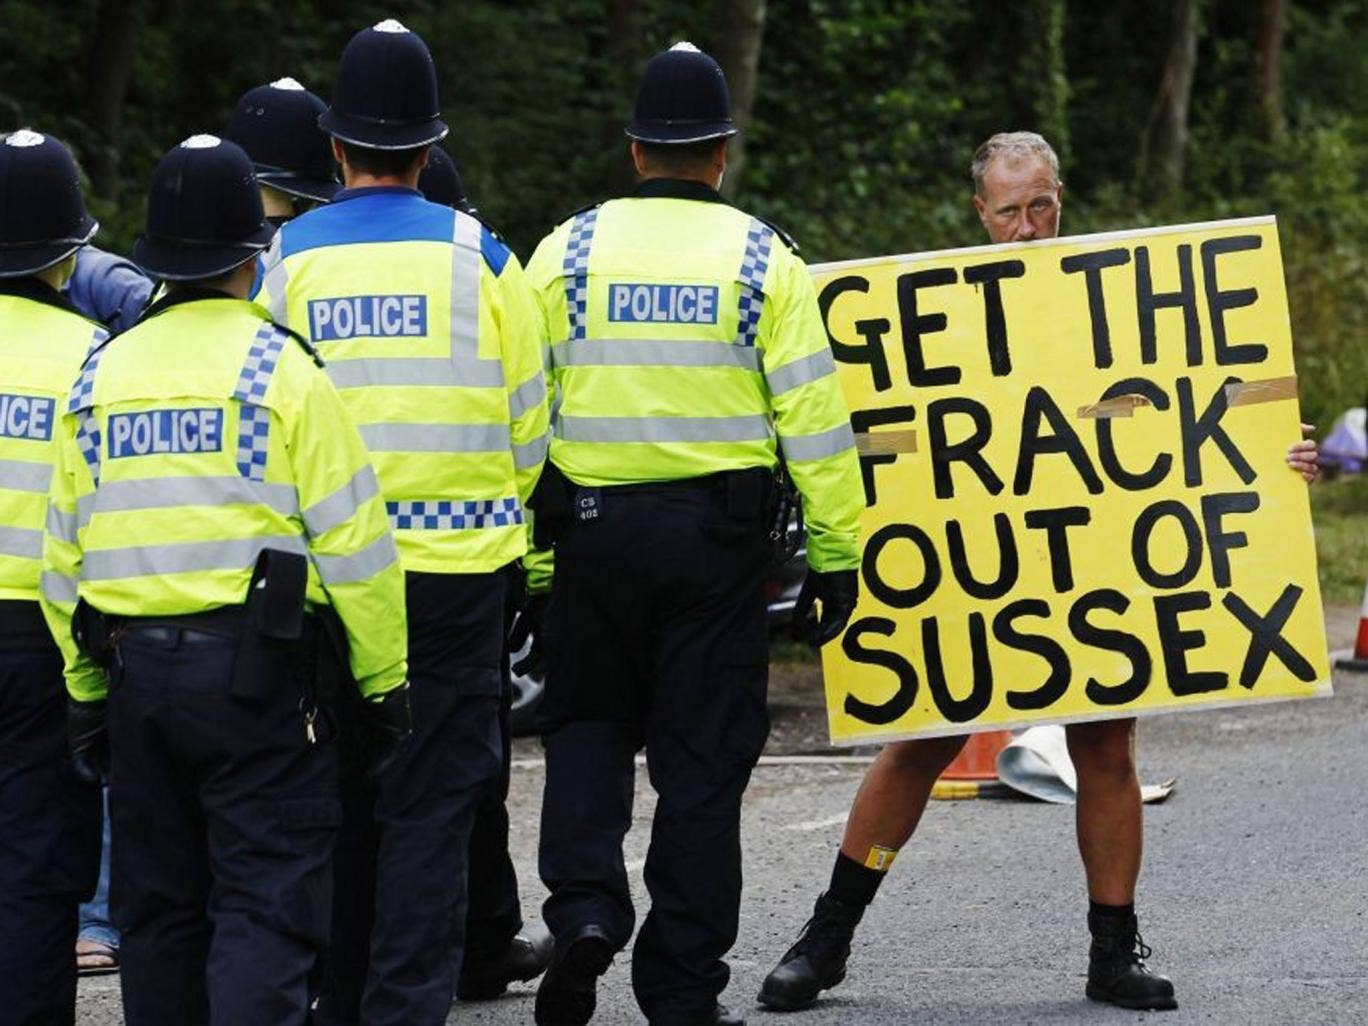 The Sussex protest is spreading